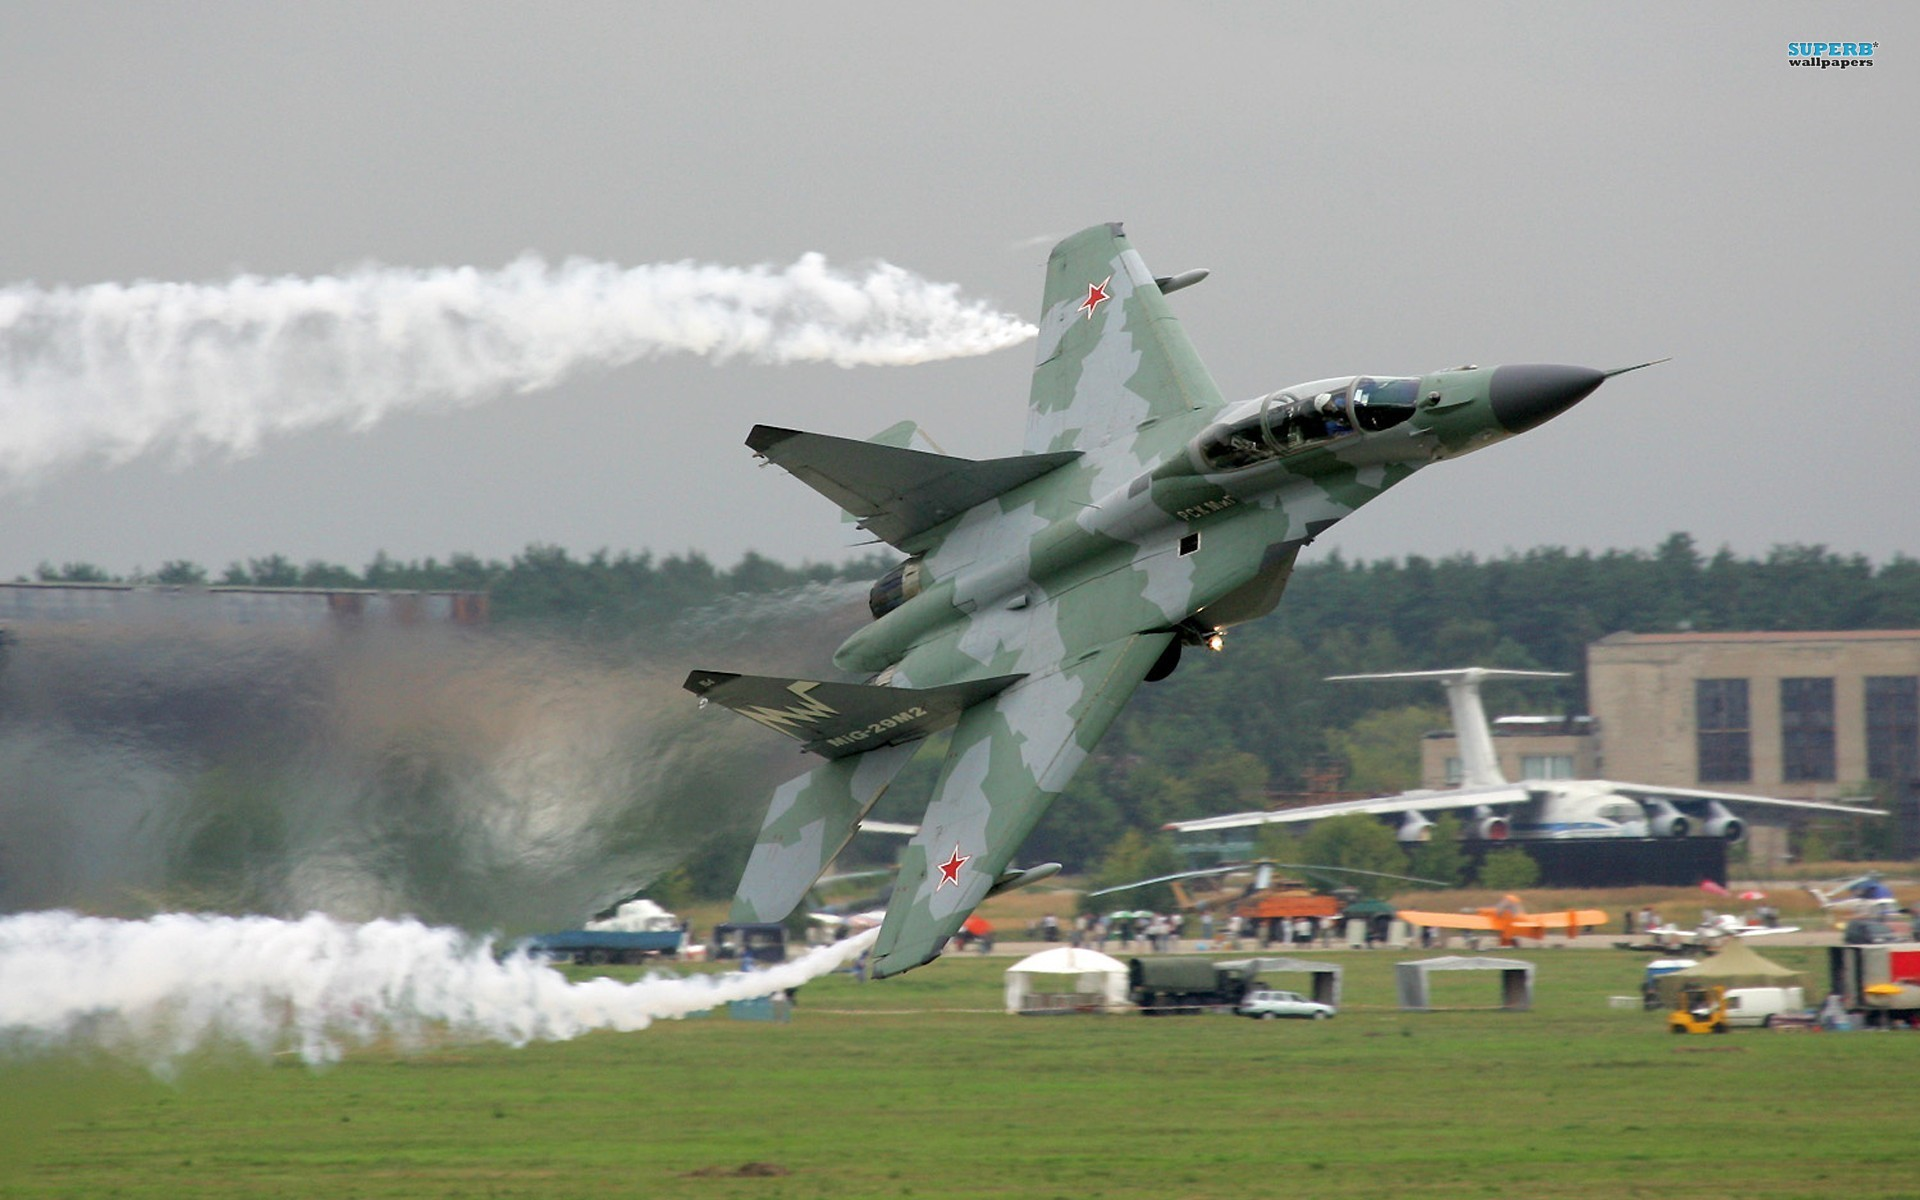 MiG-29 FULCRUM (MIKOYAN-GUREVICH) - Russia / Soviet Nuclear Forces